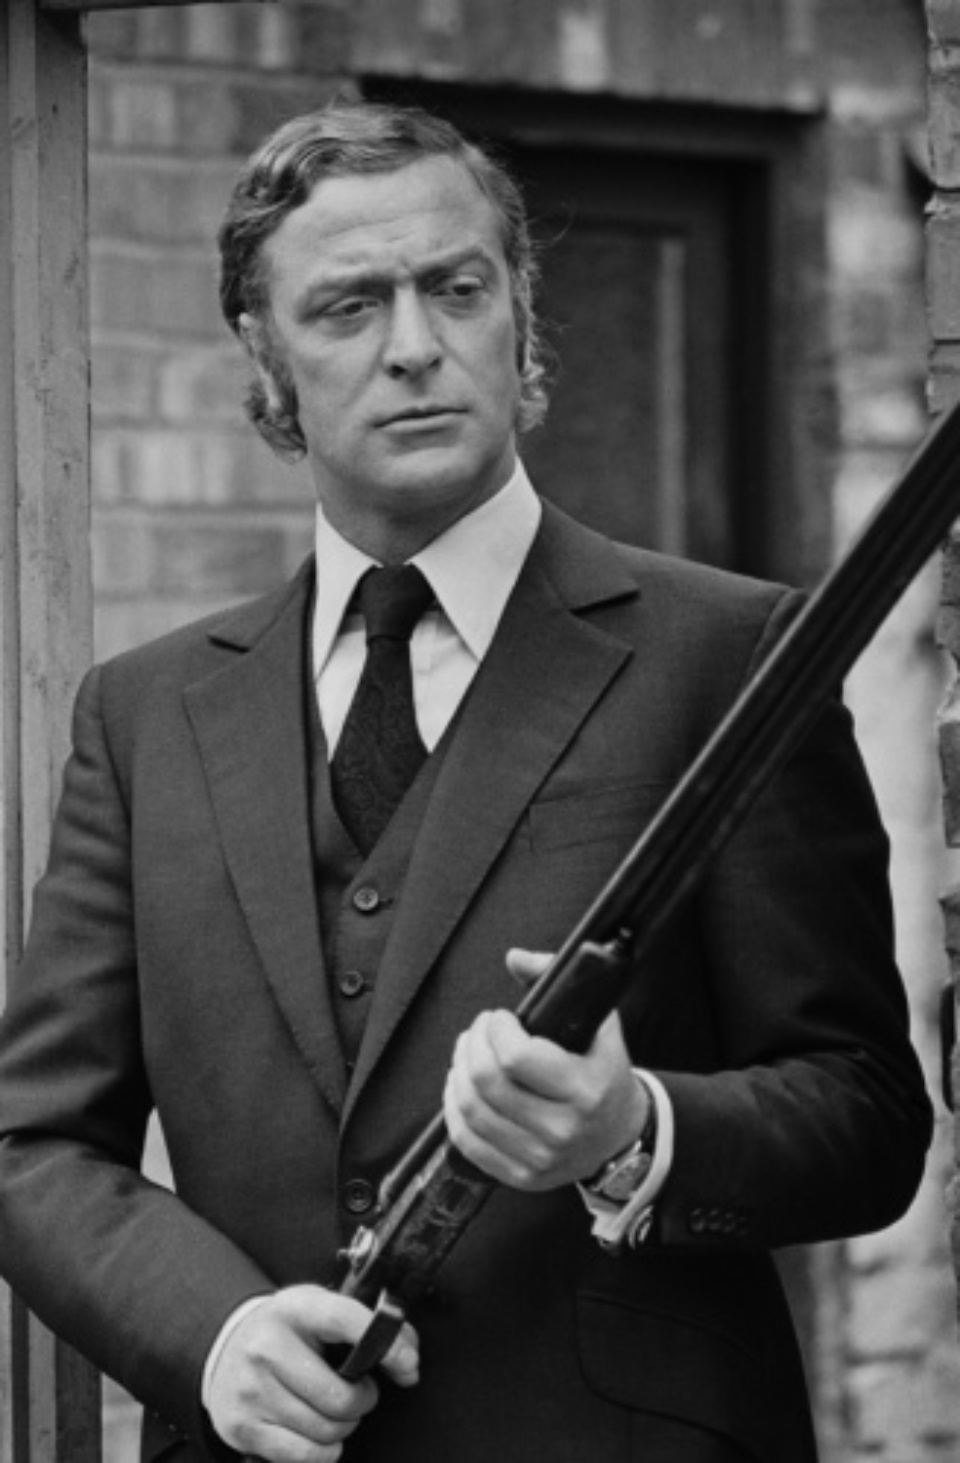 Terry O'Neill: Michael Caine Newcastle, 1971 Gelatin silver print, printed later Signed on recto Signed and numbered on verso 60 x 50 cm Editioned